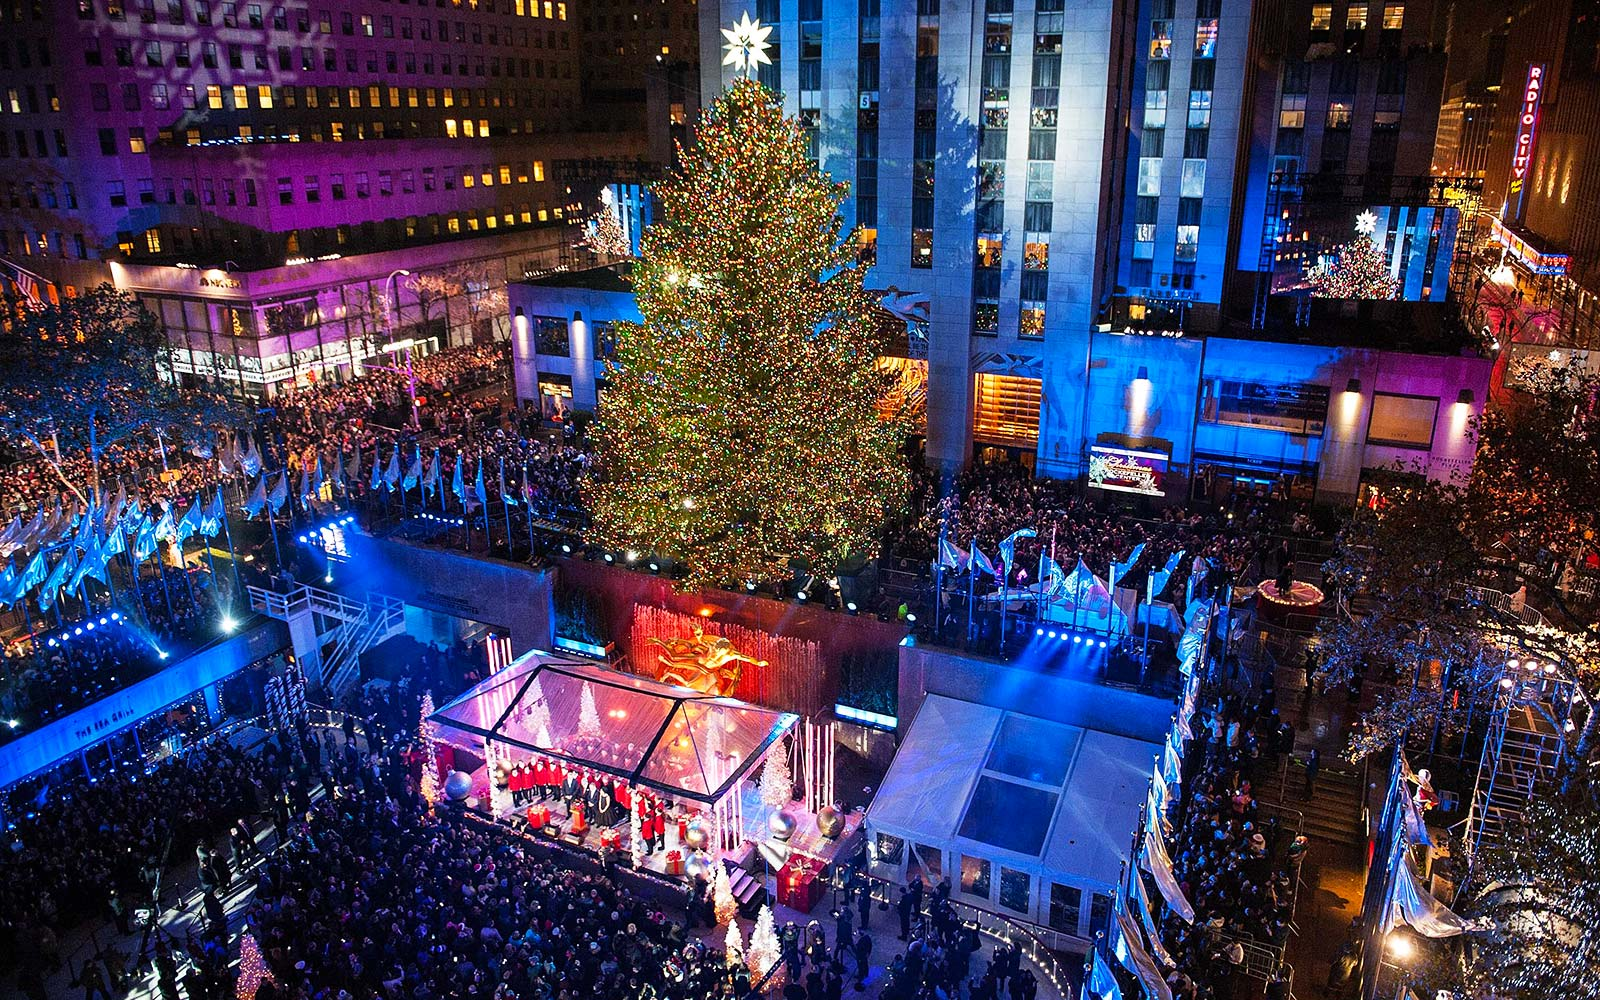 Get a First Look at This Year's Rockefeller Center Christmas Tree